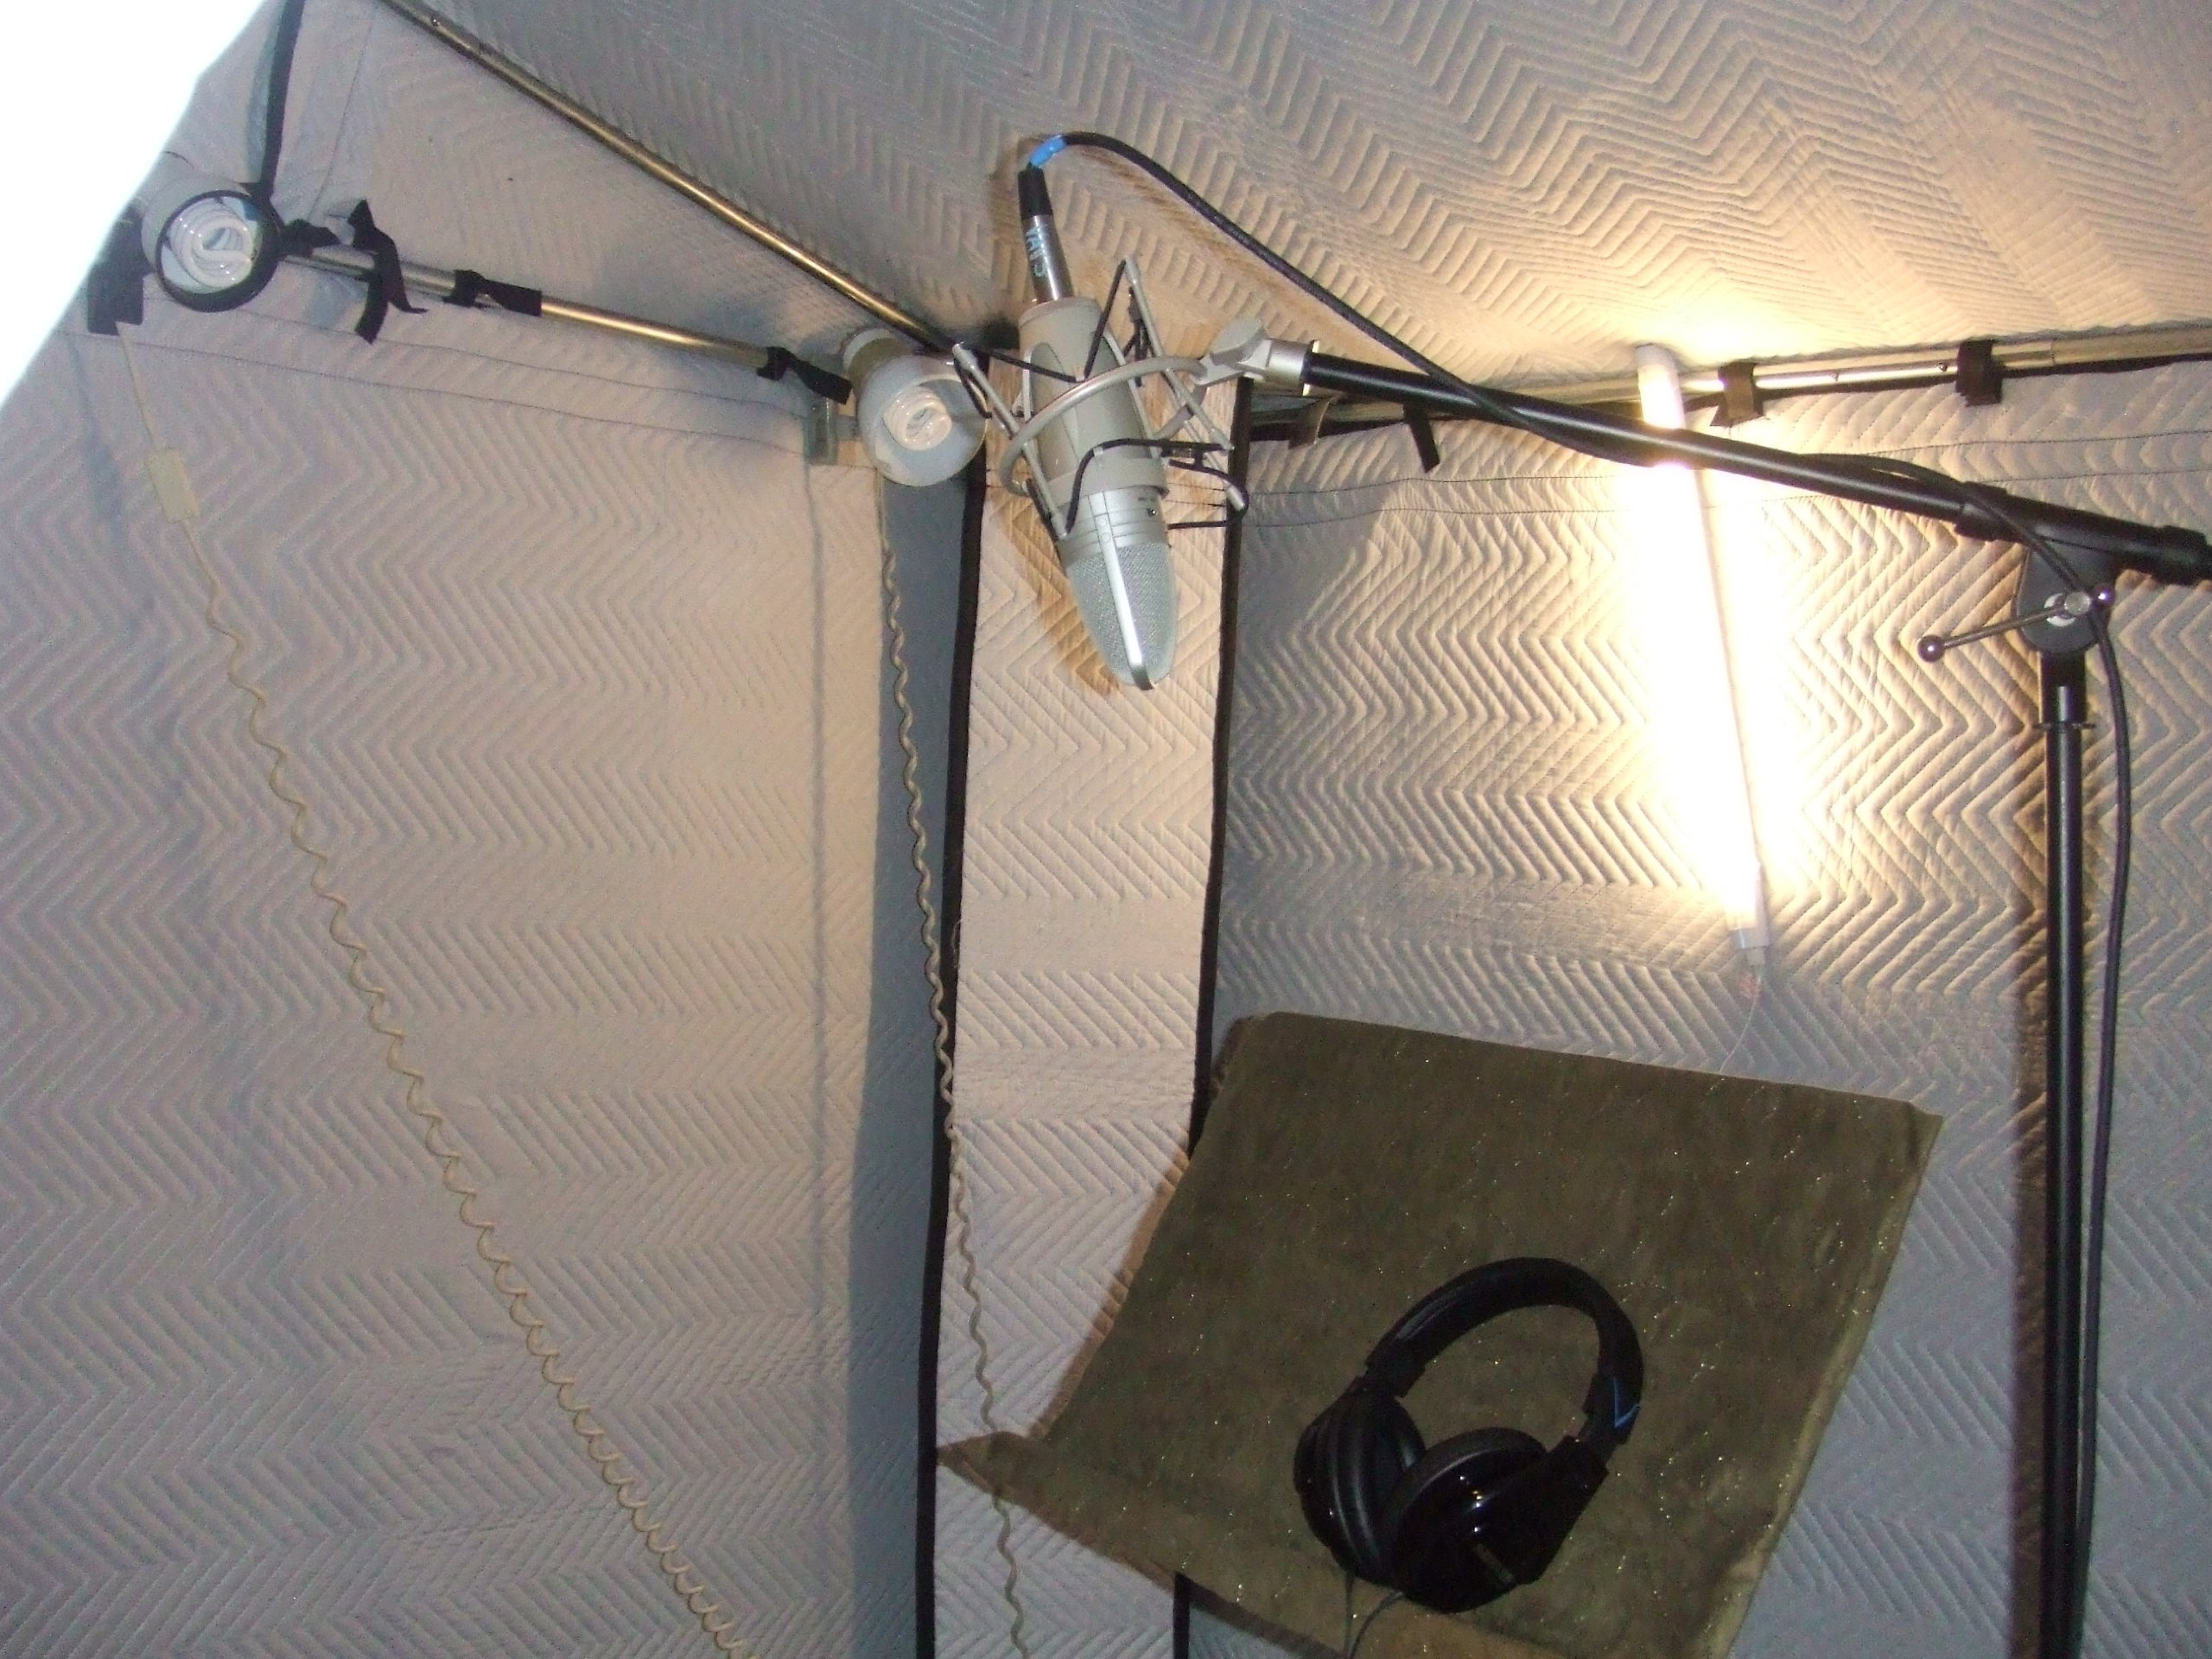 VocalBoothToGo 3 X 3 Acoustical Vocal Booth For Acoustic Treatment for Voice Overs, Audio Recordings